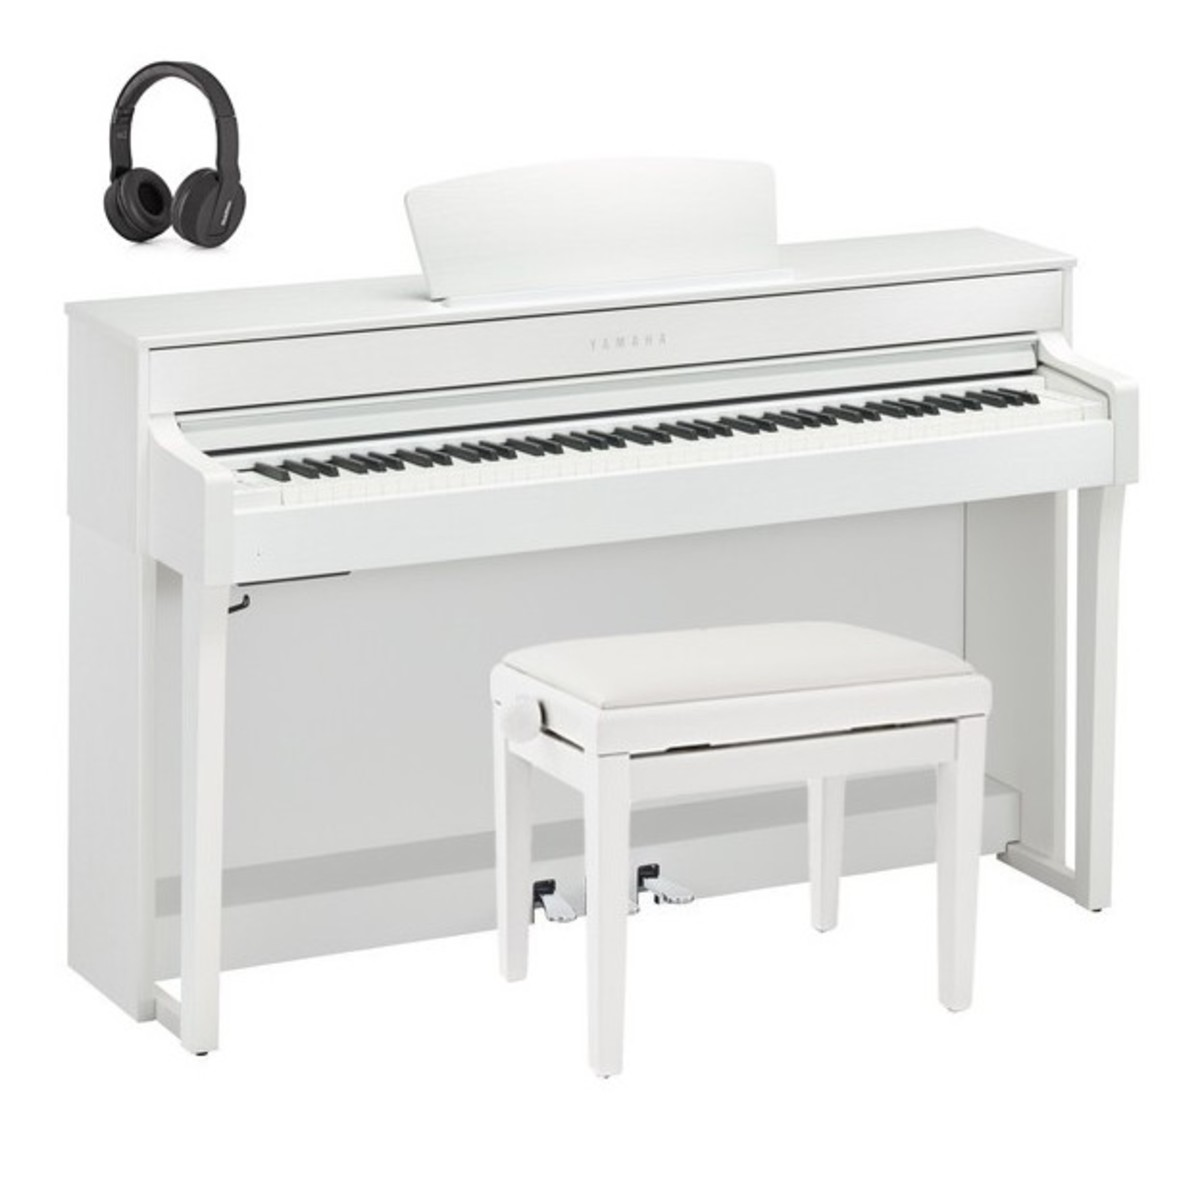 yamaha clp 635 digital piano package satin white at gear4music. Black Bedroom Furniture Sets. Home Design Ideas